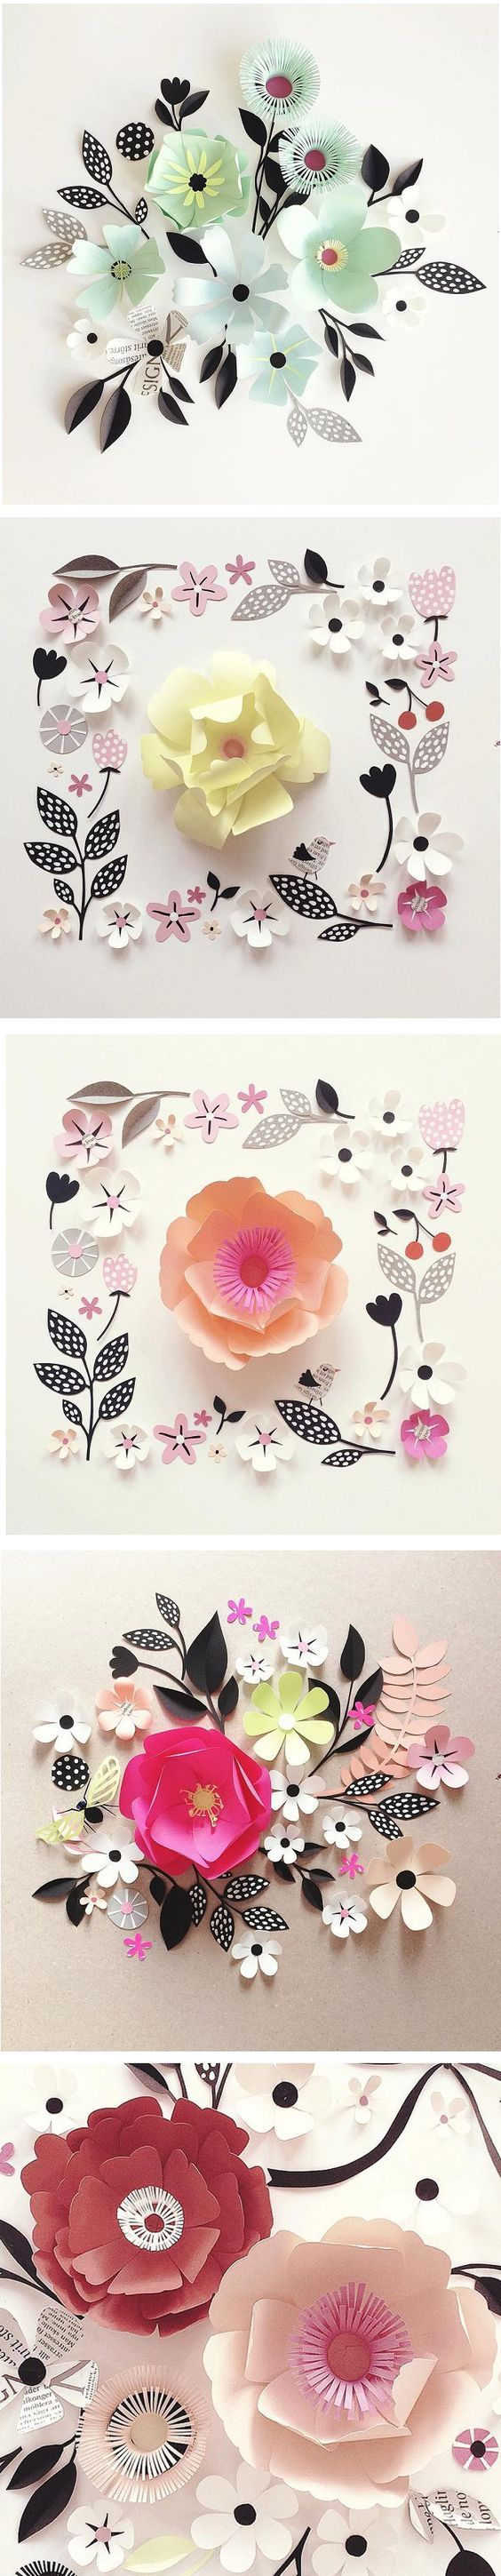 Hanna Nyman has always had an affinity for flowers. Now, she creates beautiful blooms out of paper and arranges them into eye-pleasing compositions.